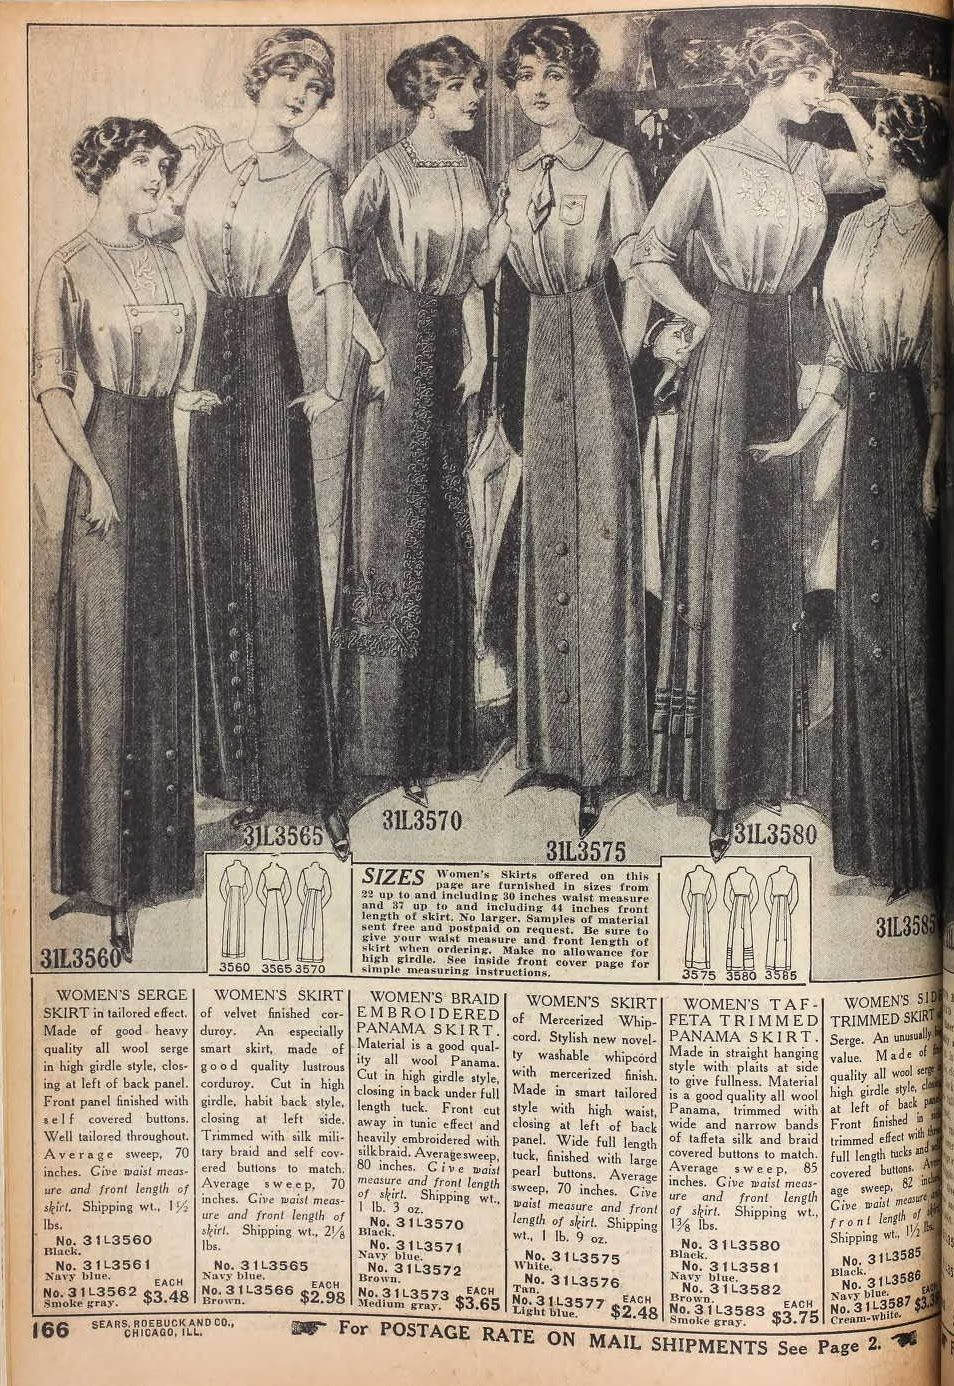 Fashion 1910 to 1920 - 40 Years Of Fashion Evolution Before Your Very Eyes